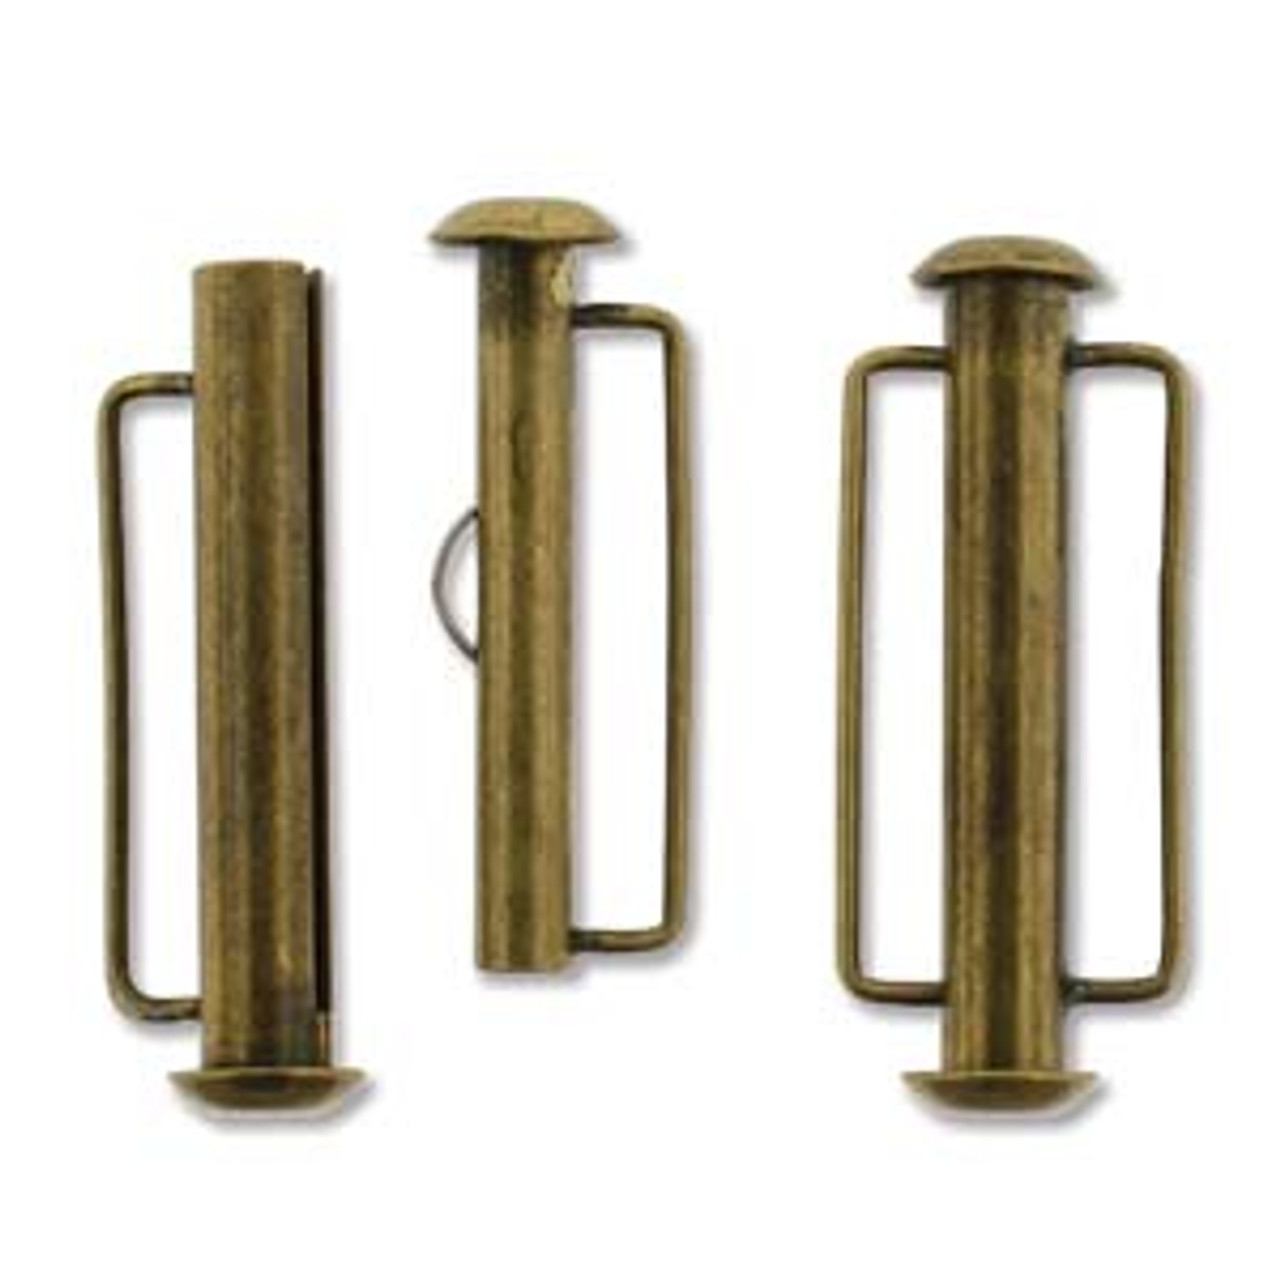 26.5mm Antique Brass Slide Bar Clasp